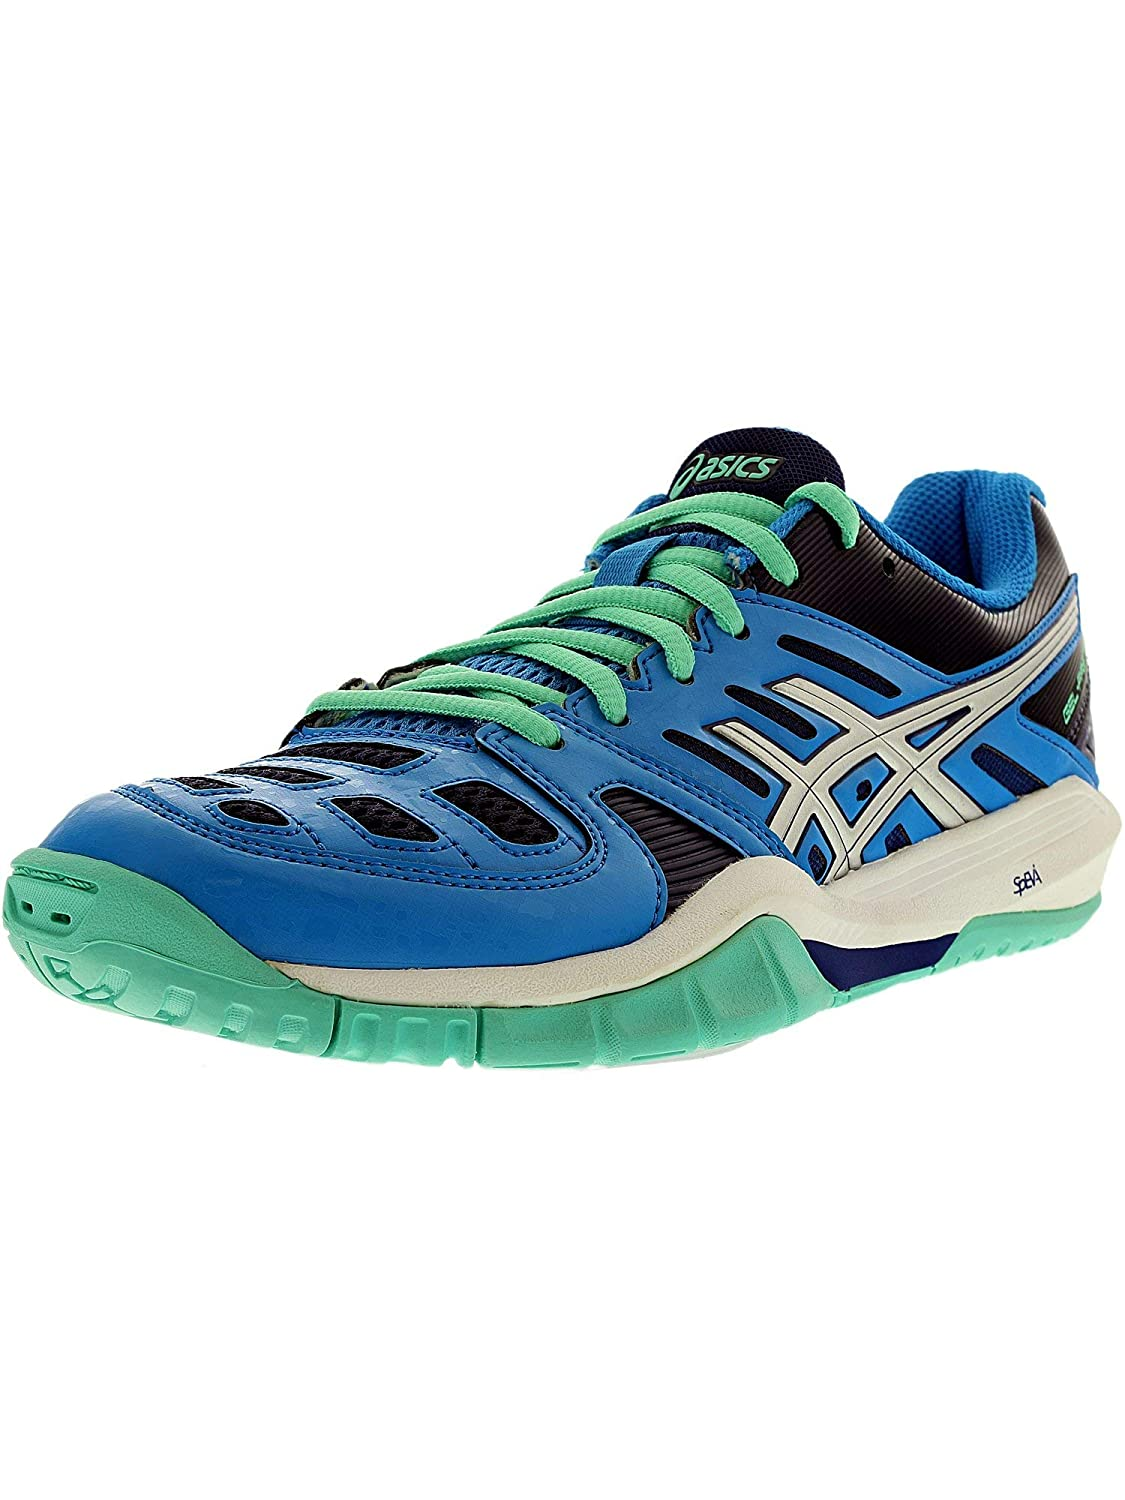 fastball asics